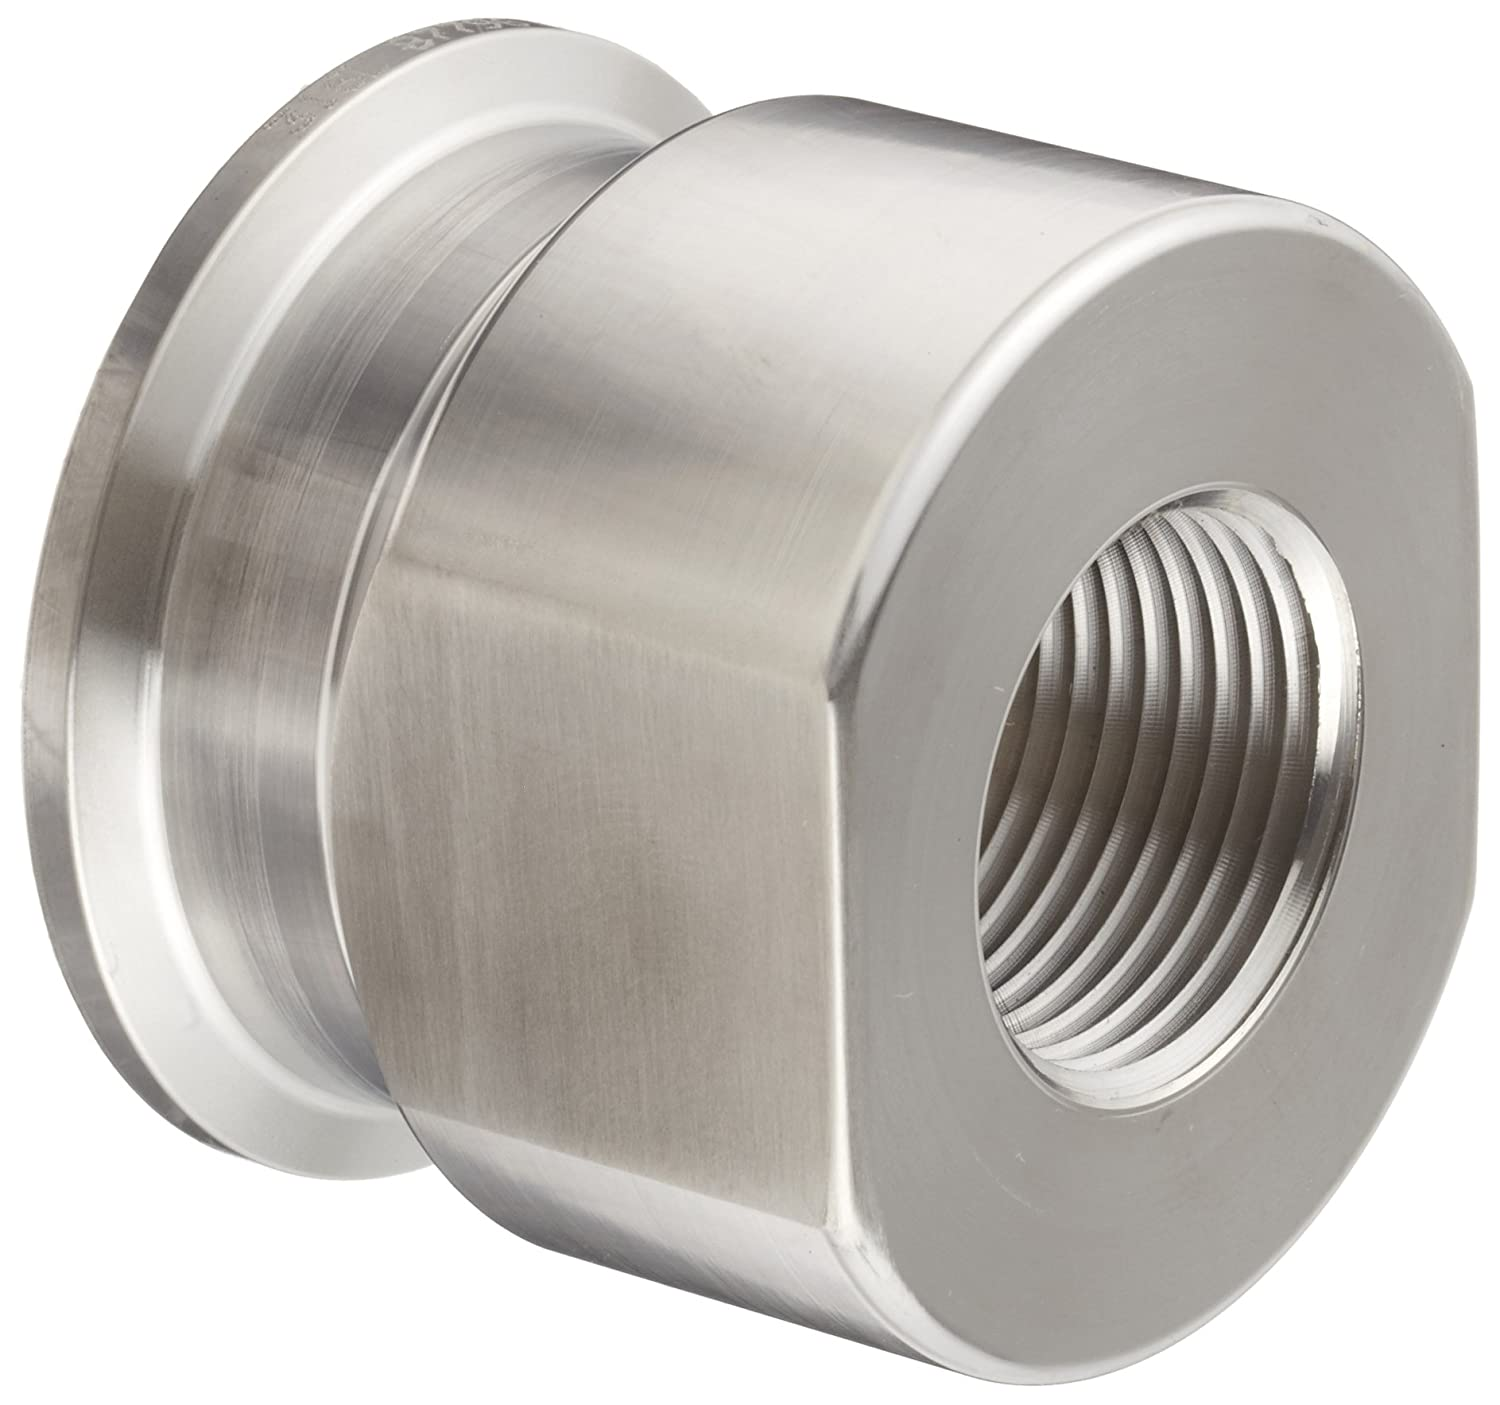 Clamp Adapter Dixon 22MP-R50 Stainless Steel 316L Sanitary Fitting 1//2 Tube OD x 1//2 NPT Female